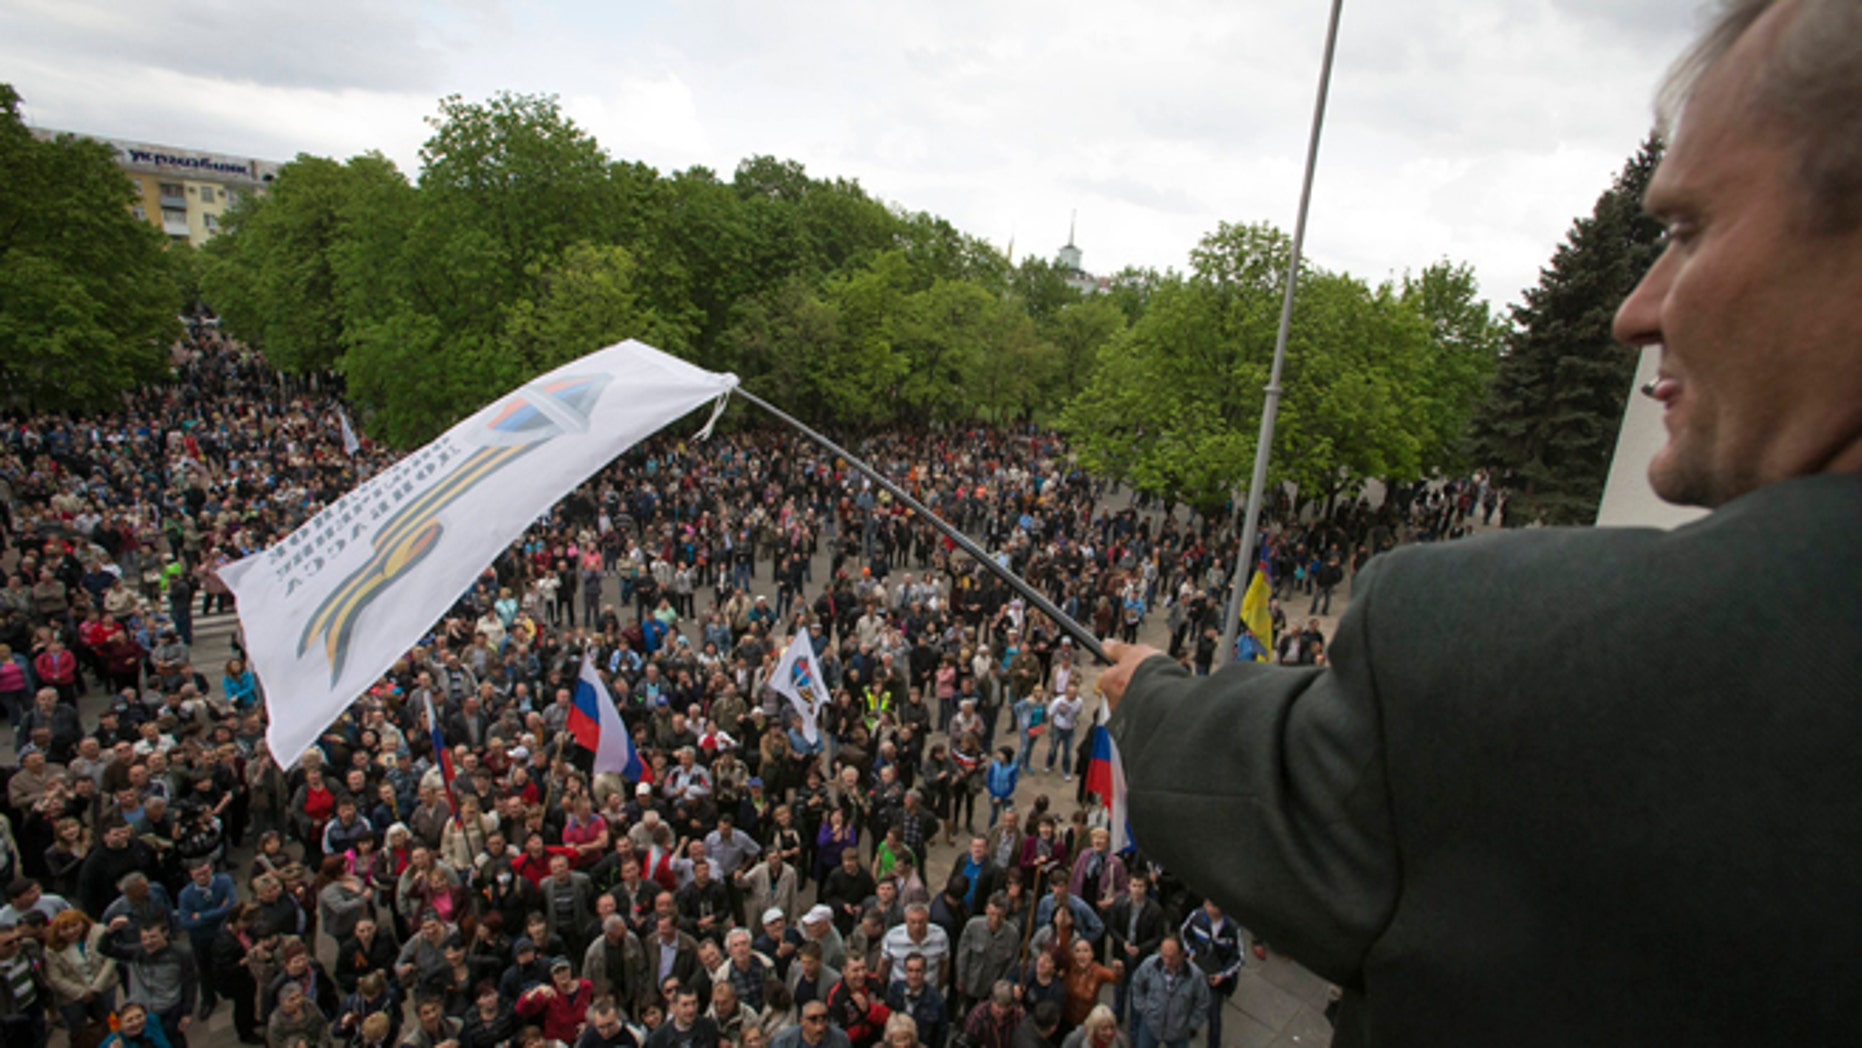 April 29, 2014: A Pro-Russian activist waves a Donbas Republic flag over a crowd celebrating the capture of an administration building in the center of Luhansk, Ukraine, one of the largest cities in Ukraine's troubled east, as demonstrators demand greater autonomy for Ukraine's regions.